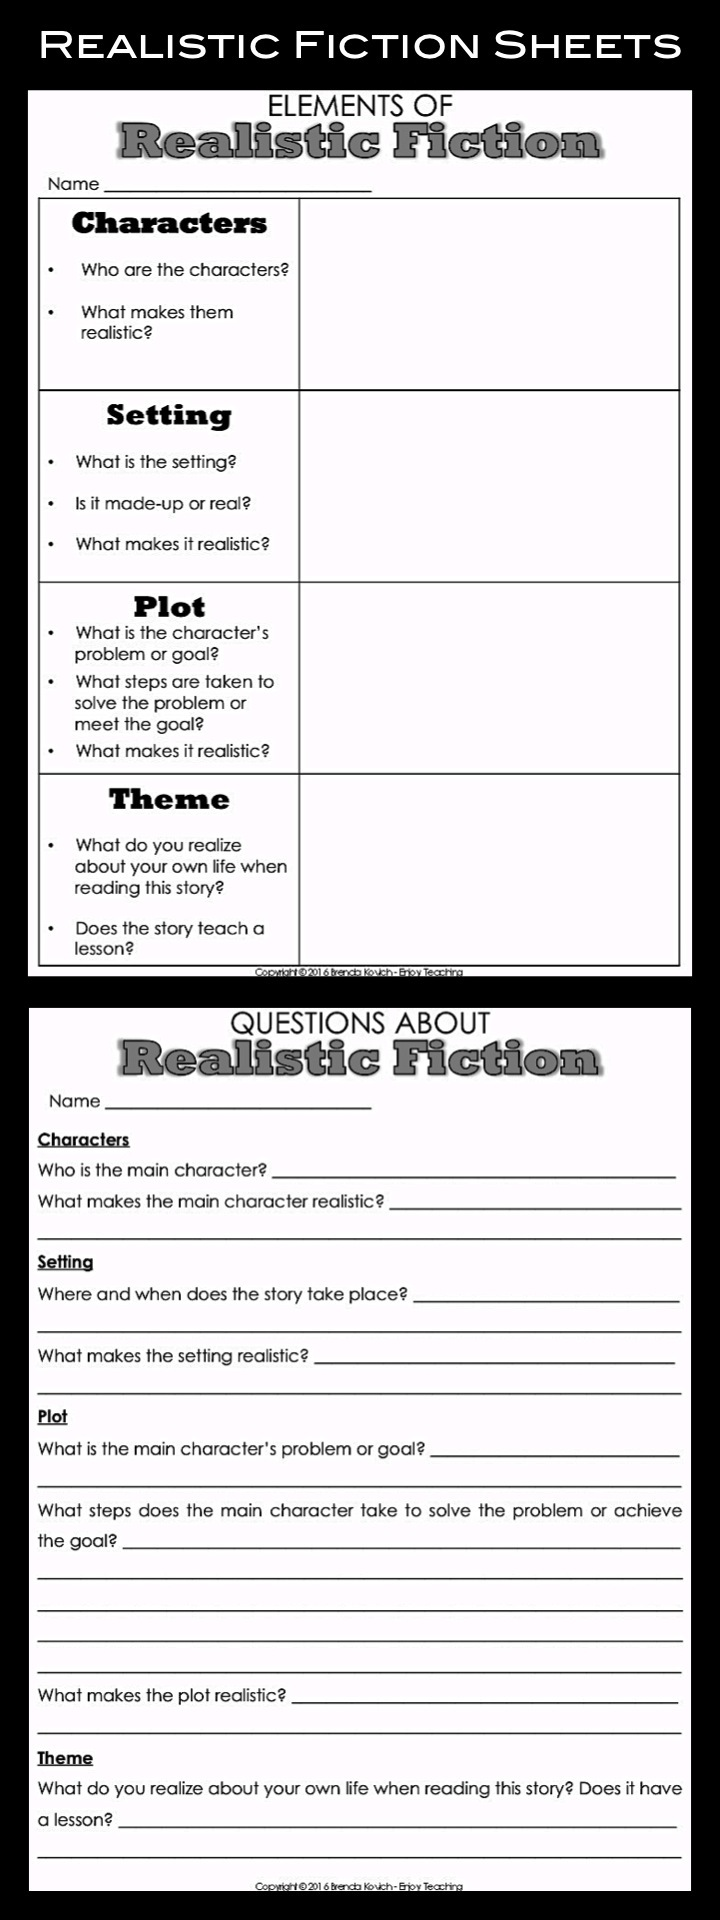 Teaching Realistic Fiction With Reading Activities For Kids Enjoy